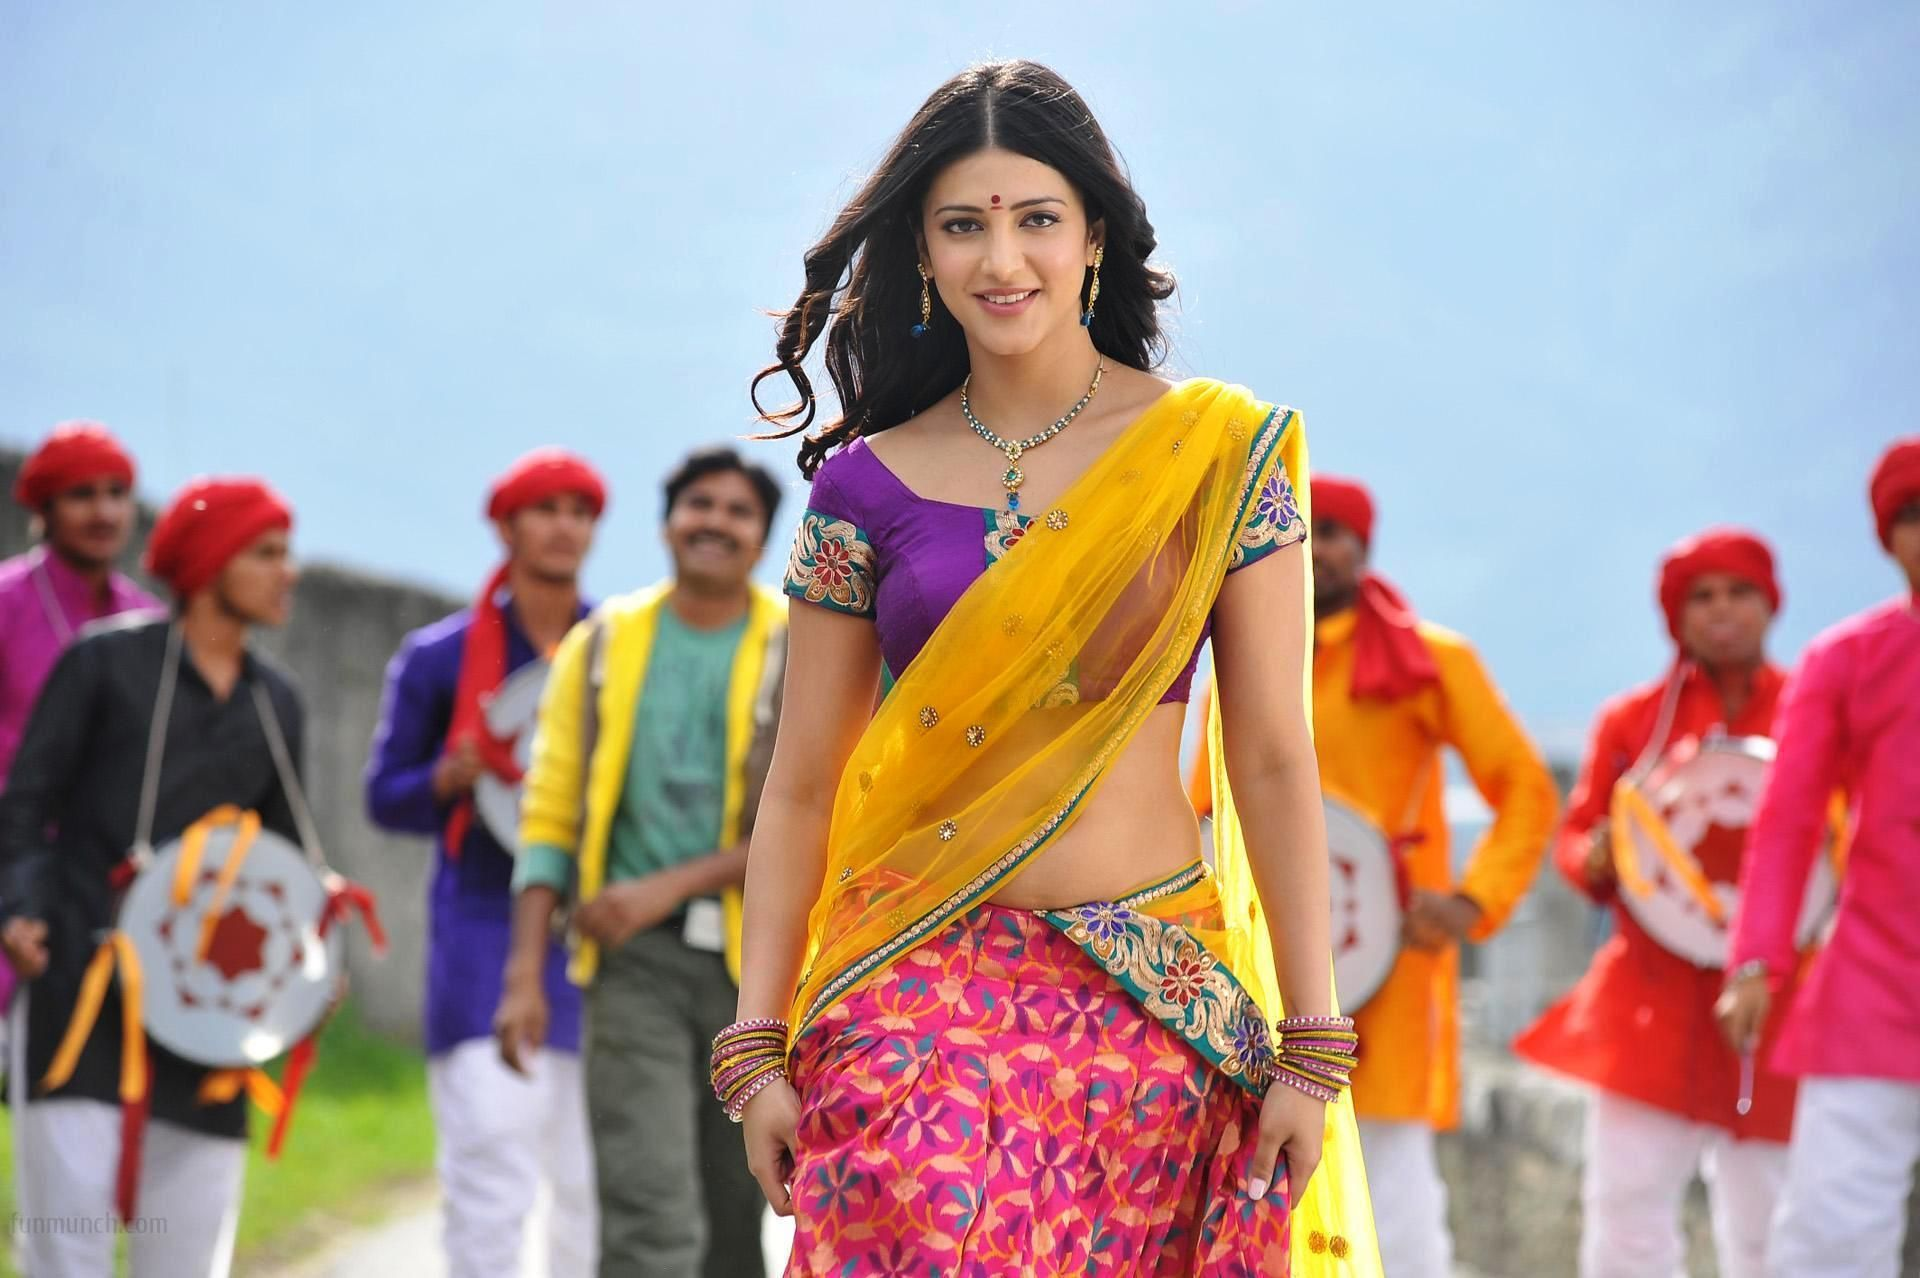 Shruti Haasan 2 Wallpapers: Shruti Haasan Wallpapers Backgrounds